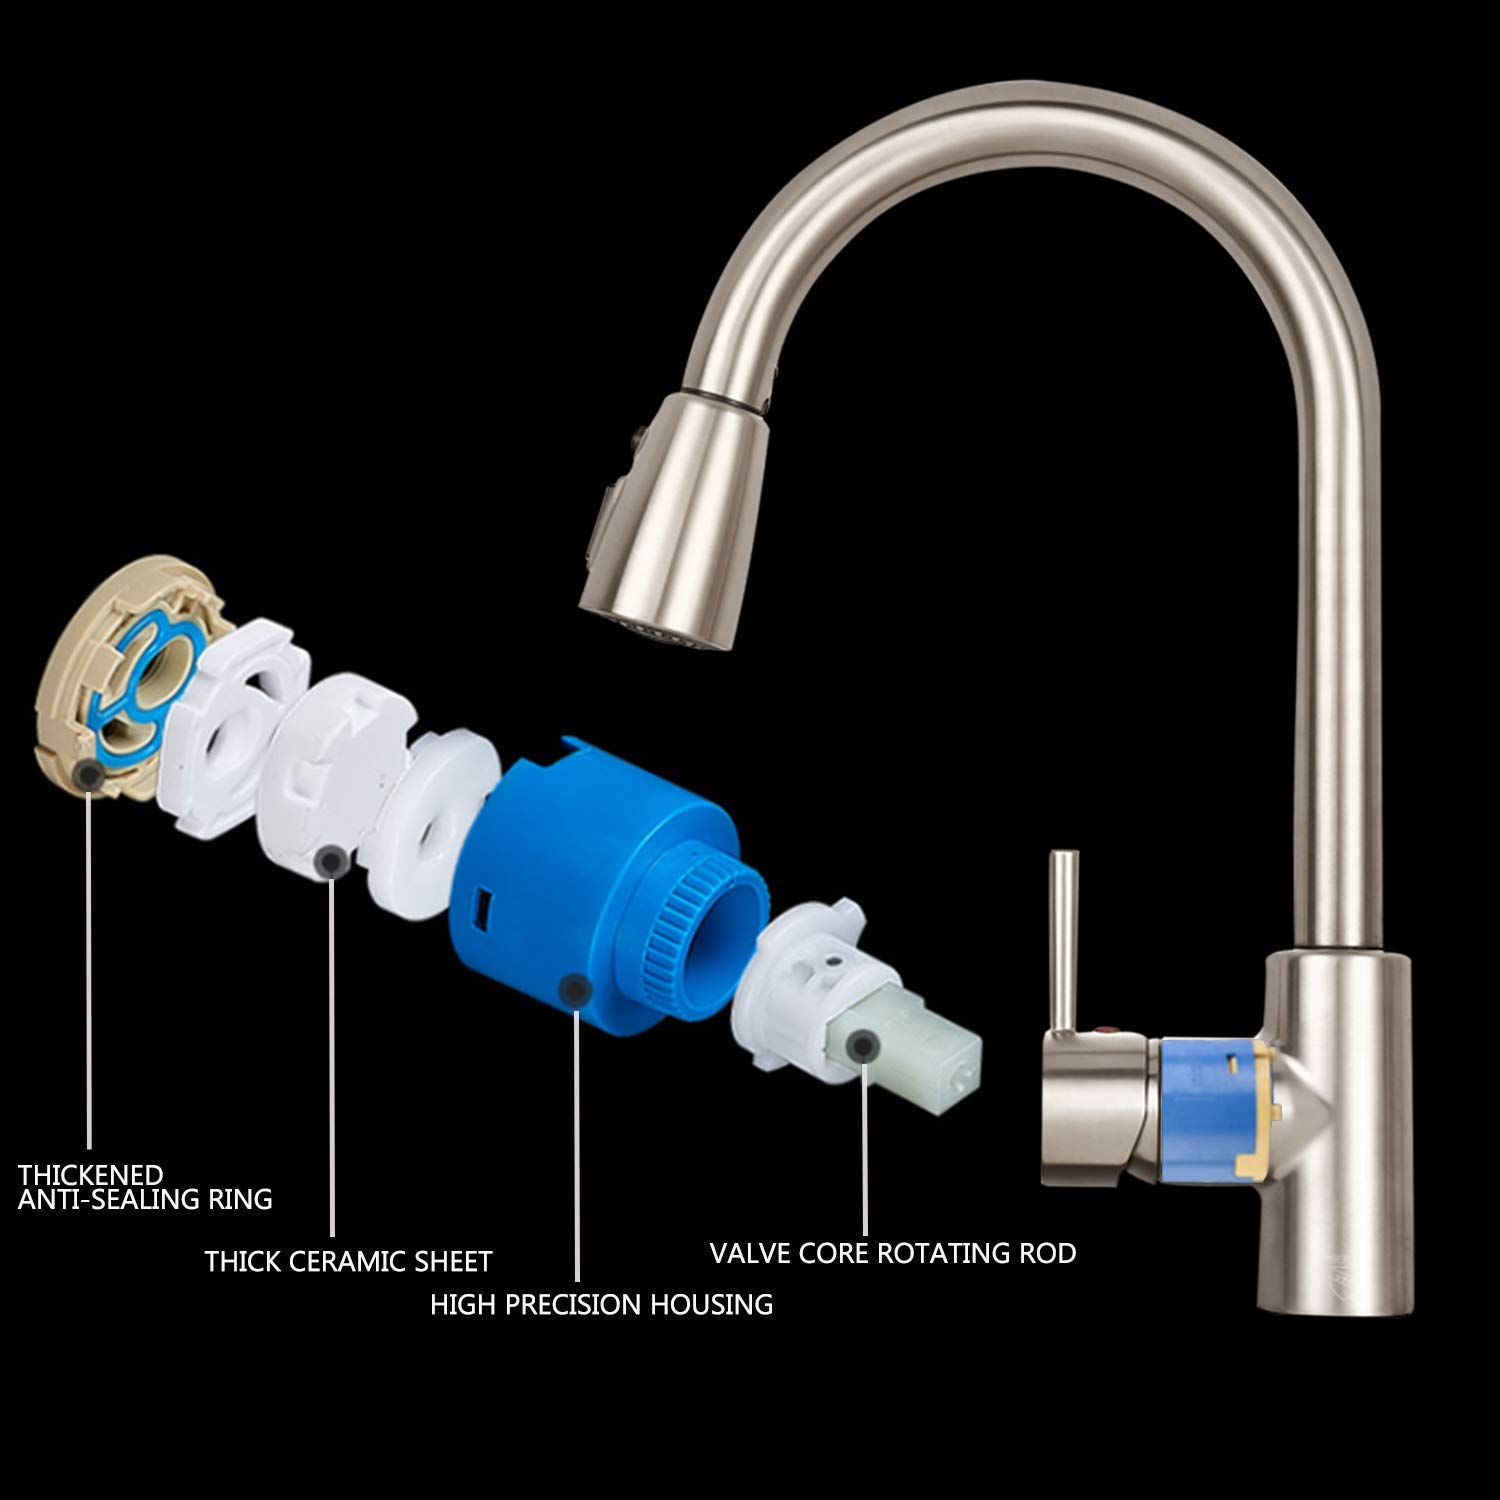 Sink Faucet, TECCPO Single Handle High Arc Brushed Nickel Stainless Steel Kitchen Sink Faucet with 3 Spray Modes Pull Down Sprayer, Kitchen Faucet with Deck Plate by TECCPO (Image #7)